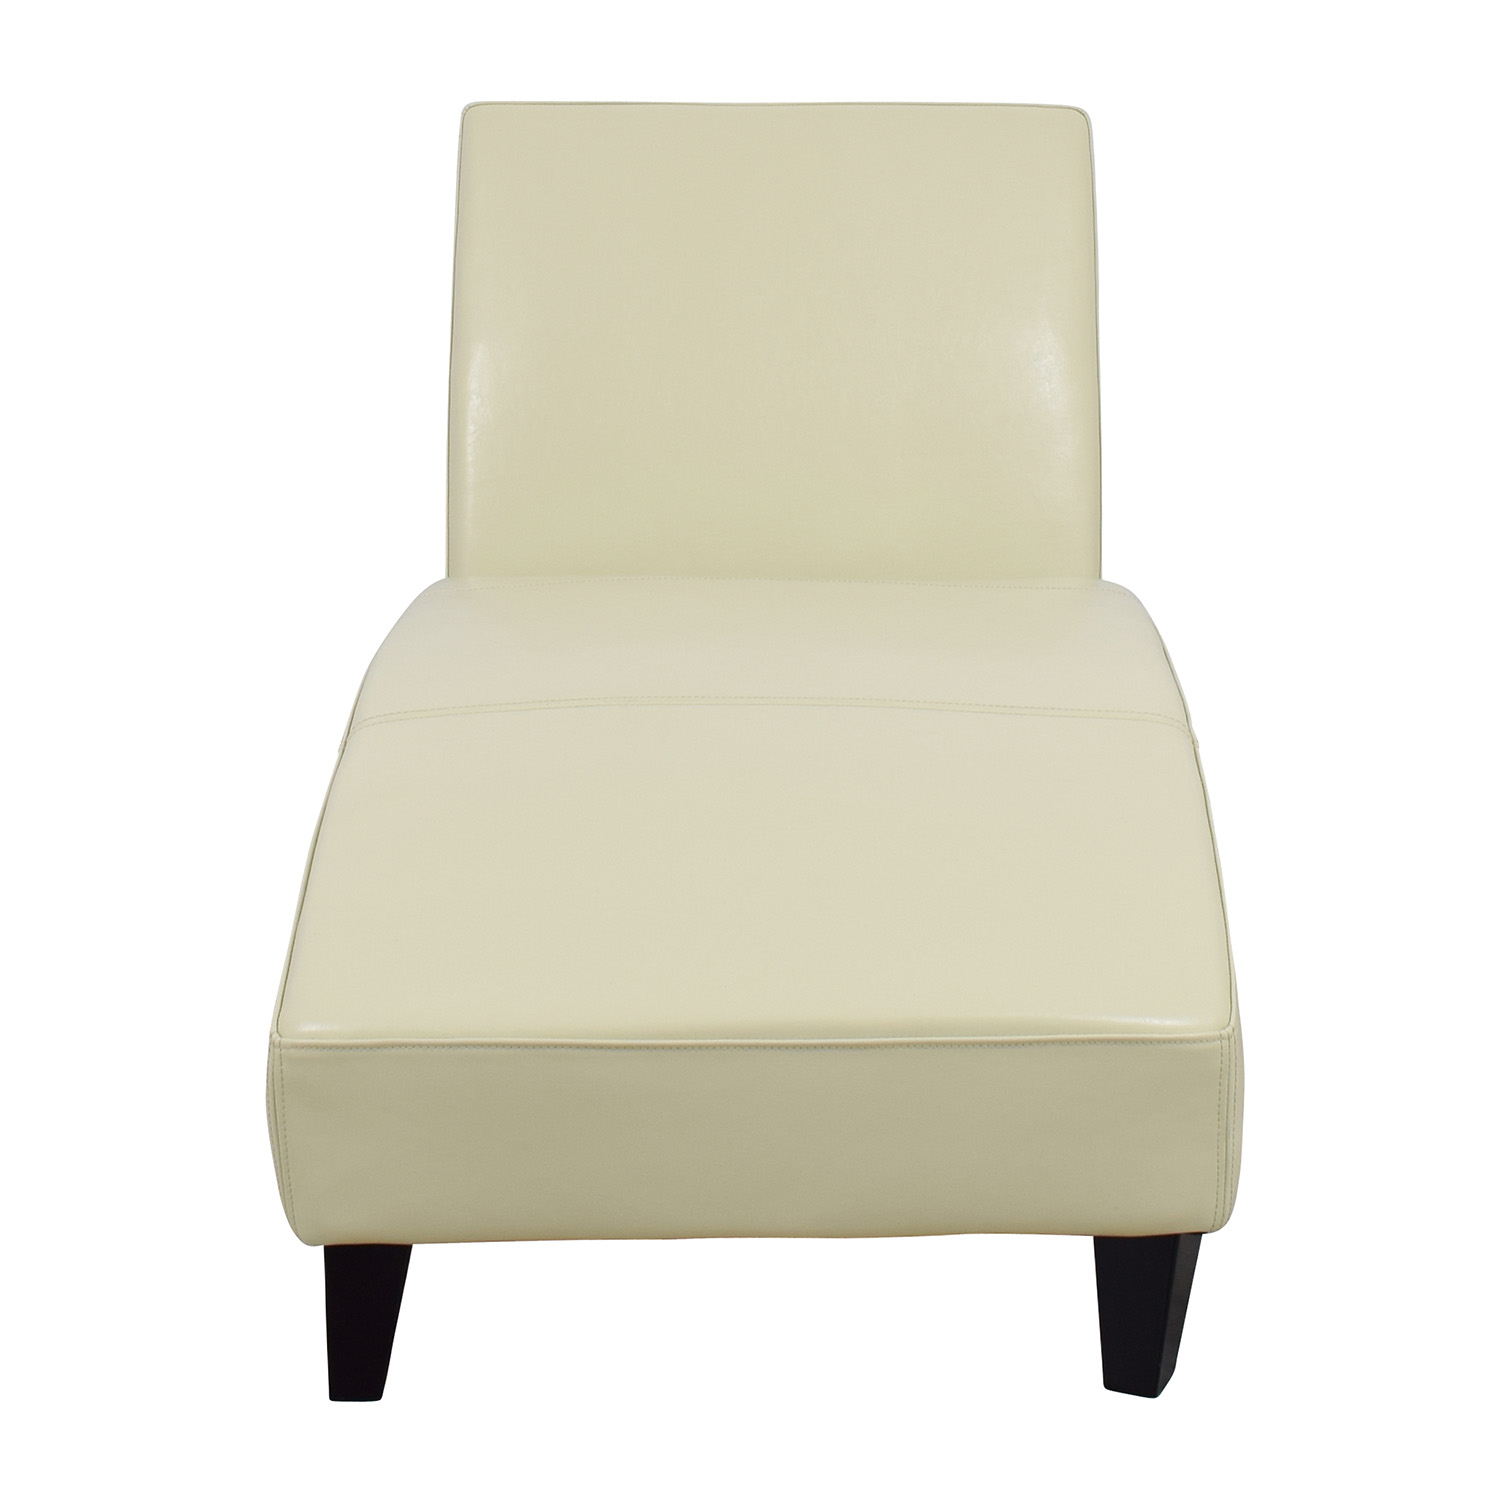 Wayfair Wayfair White Leather Chaise for sale